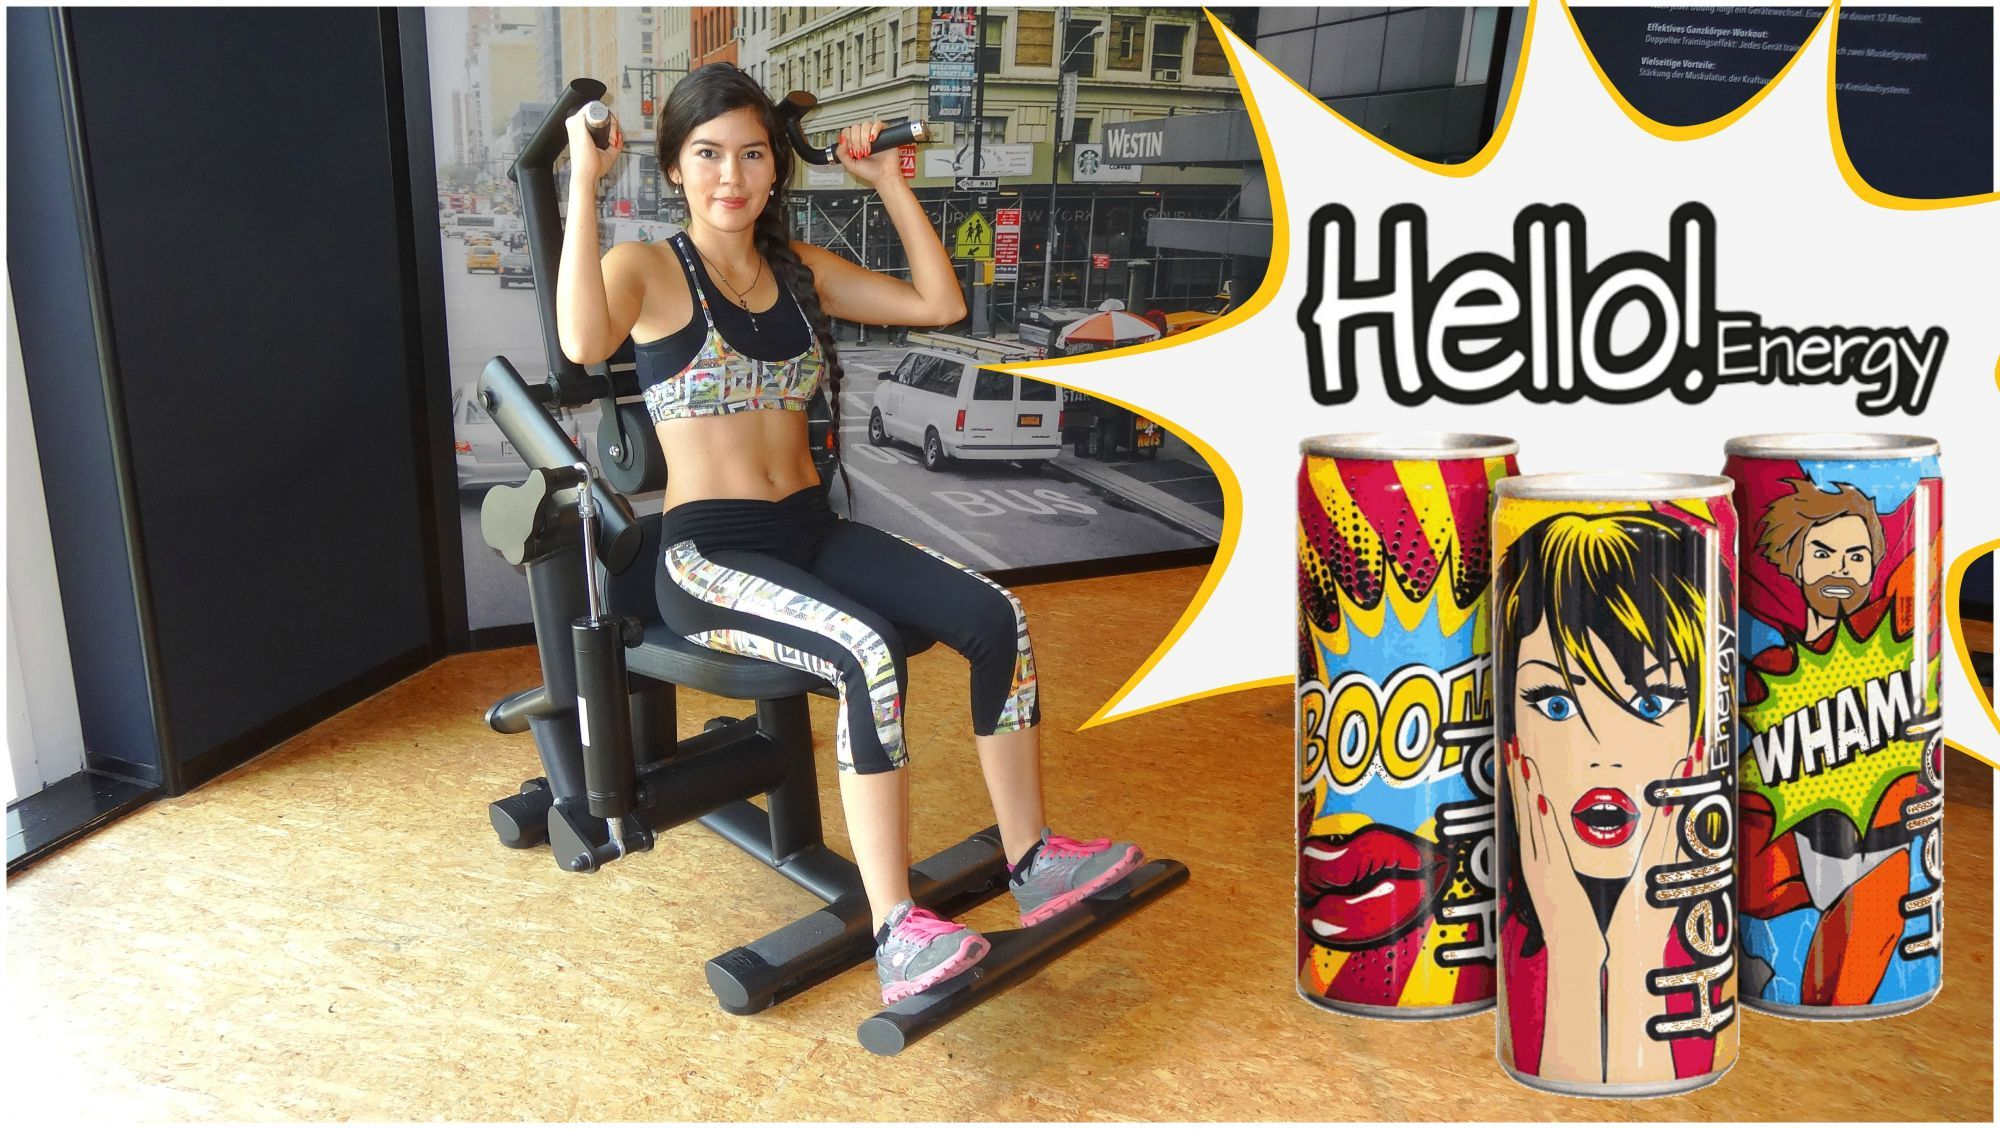 Motivation und Hello!-Energy - https://do.paart.de/?view=social&type=reply&id=72089